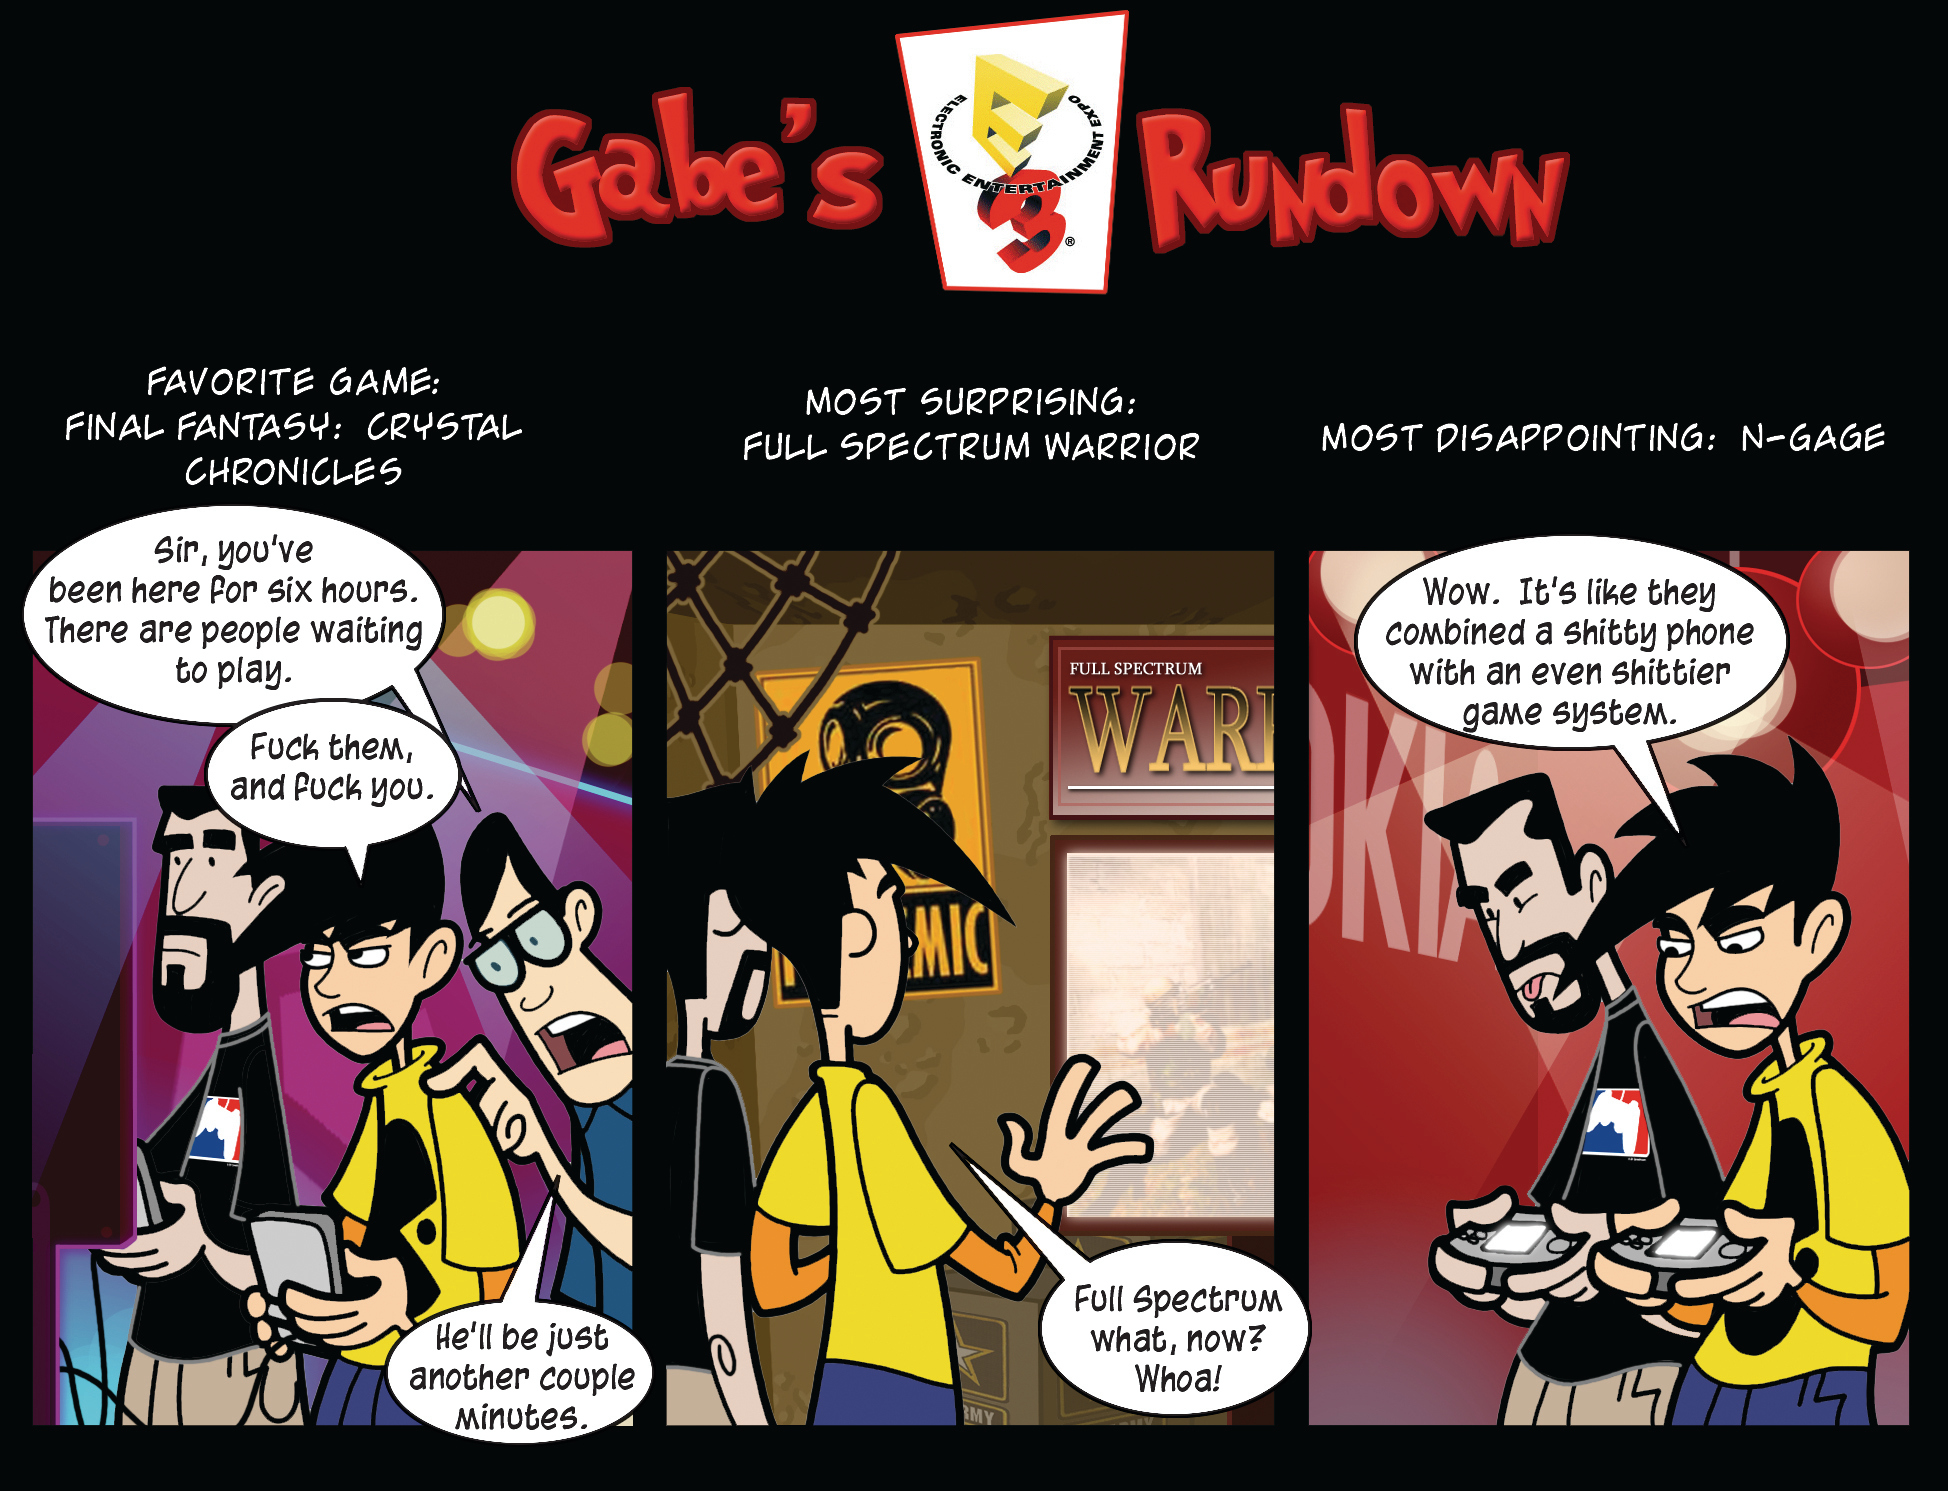 Gabe's E3 Rundown